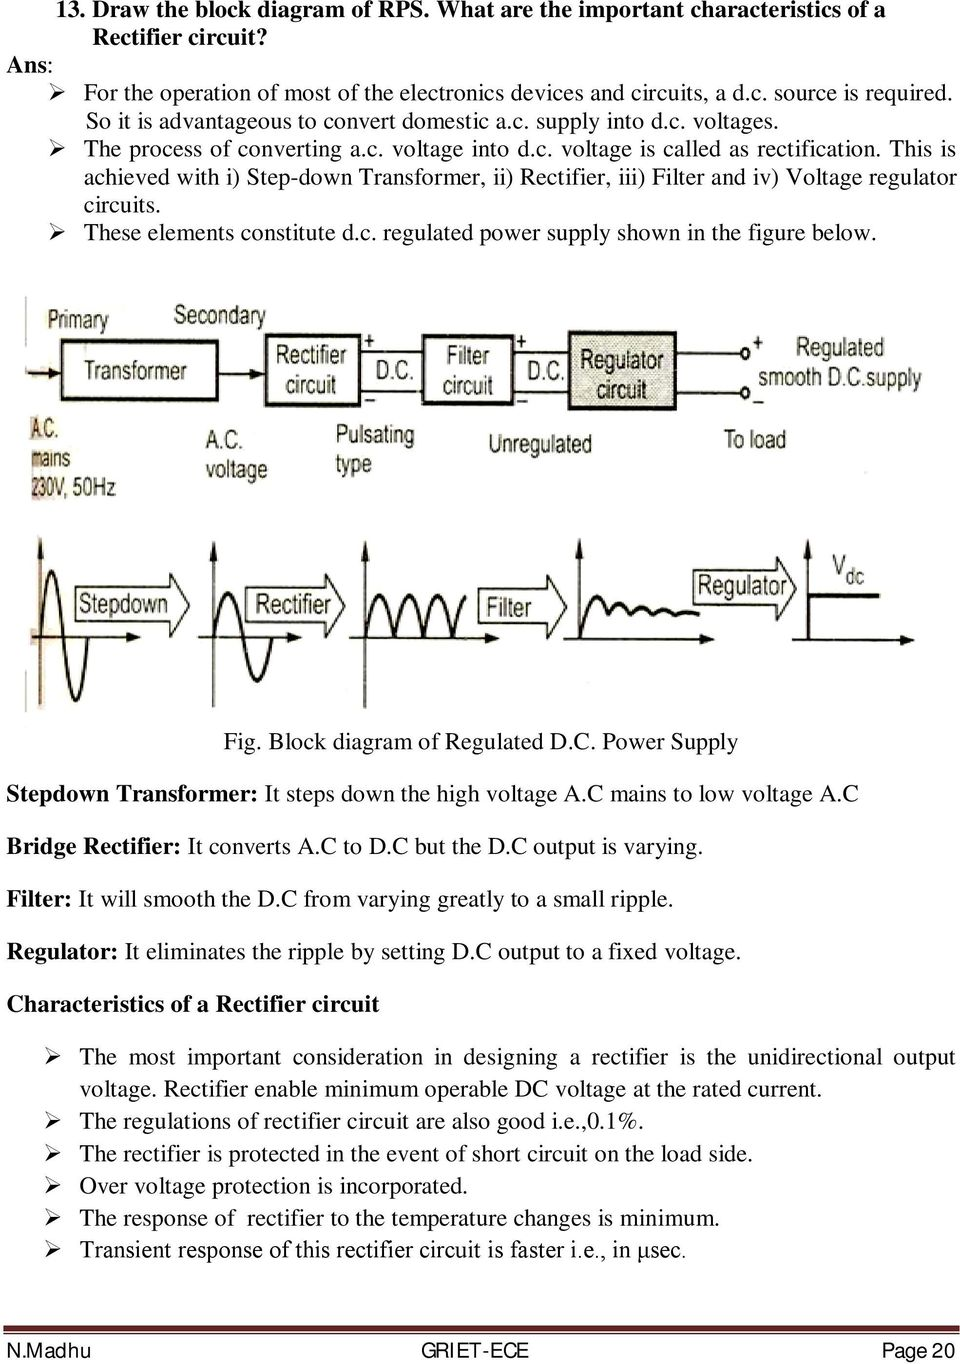 Basic Electrical And Electronics Engineering Pdf Filter Circuits Inductor Lc Clc Or Pi This Is Achieved With I Step Down Transformer Ii Rectifier Iii